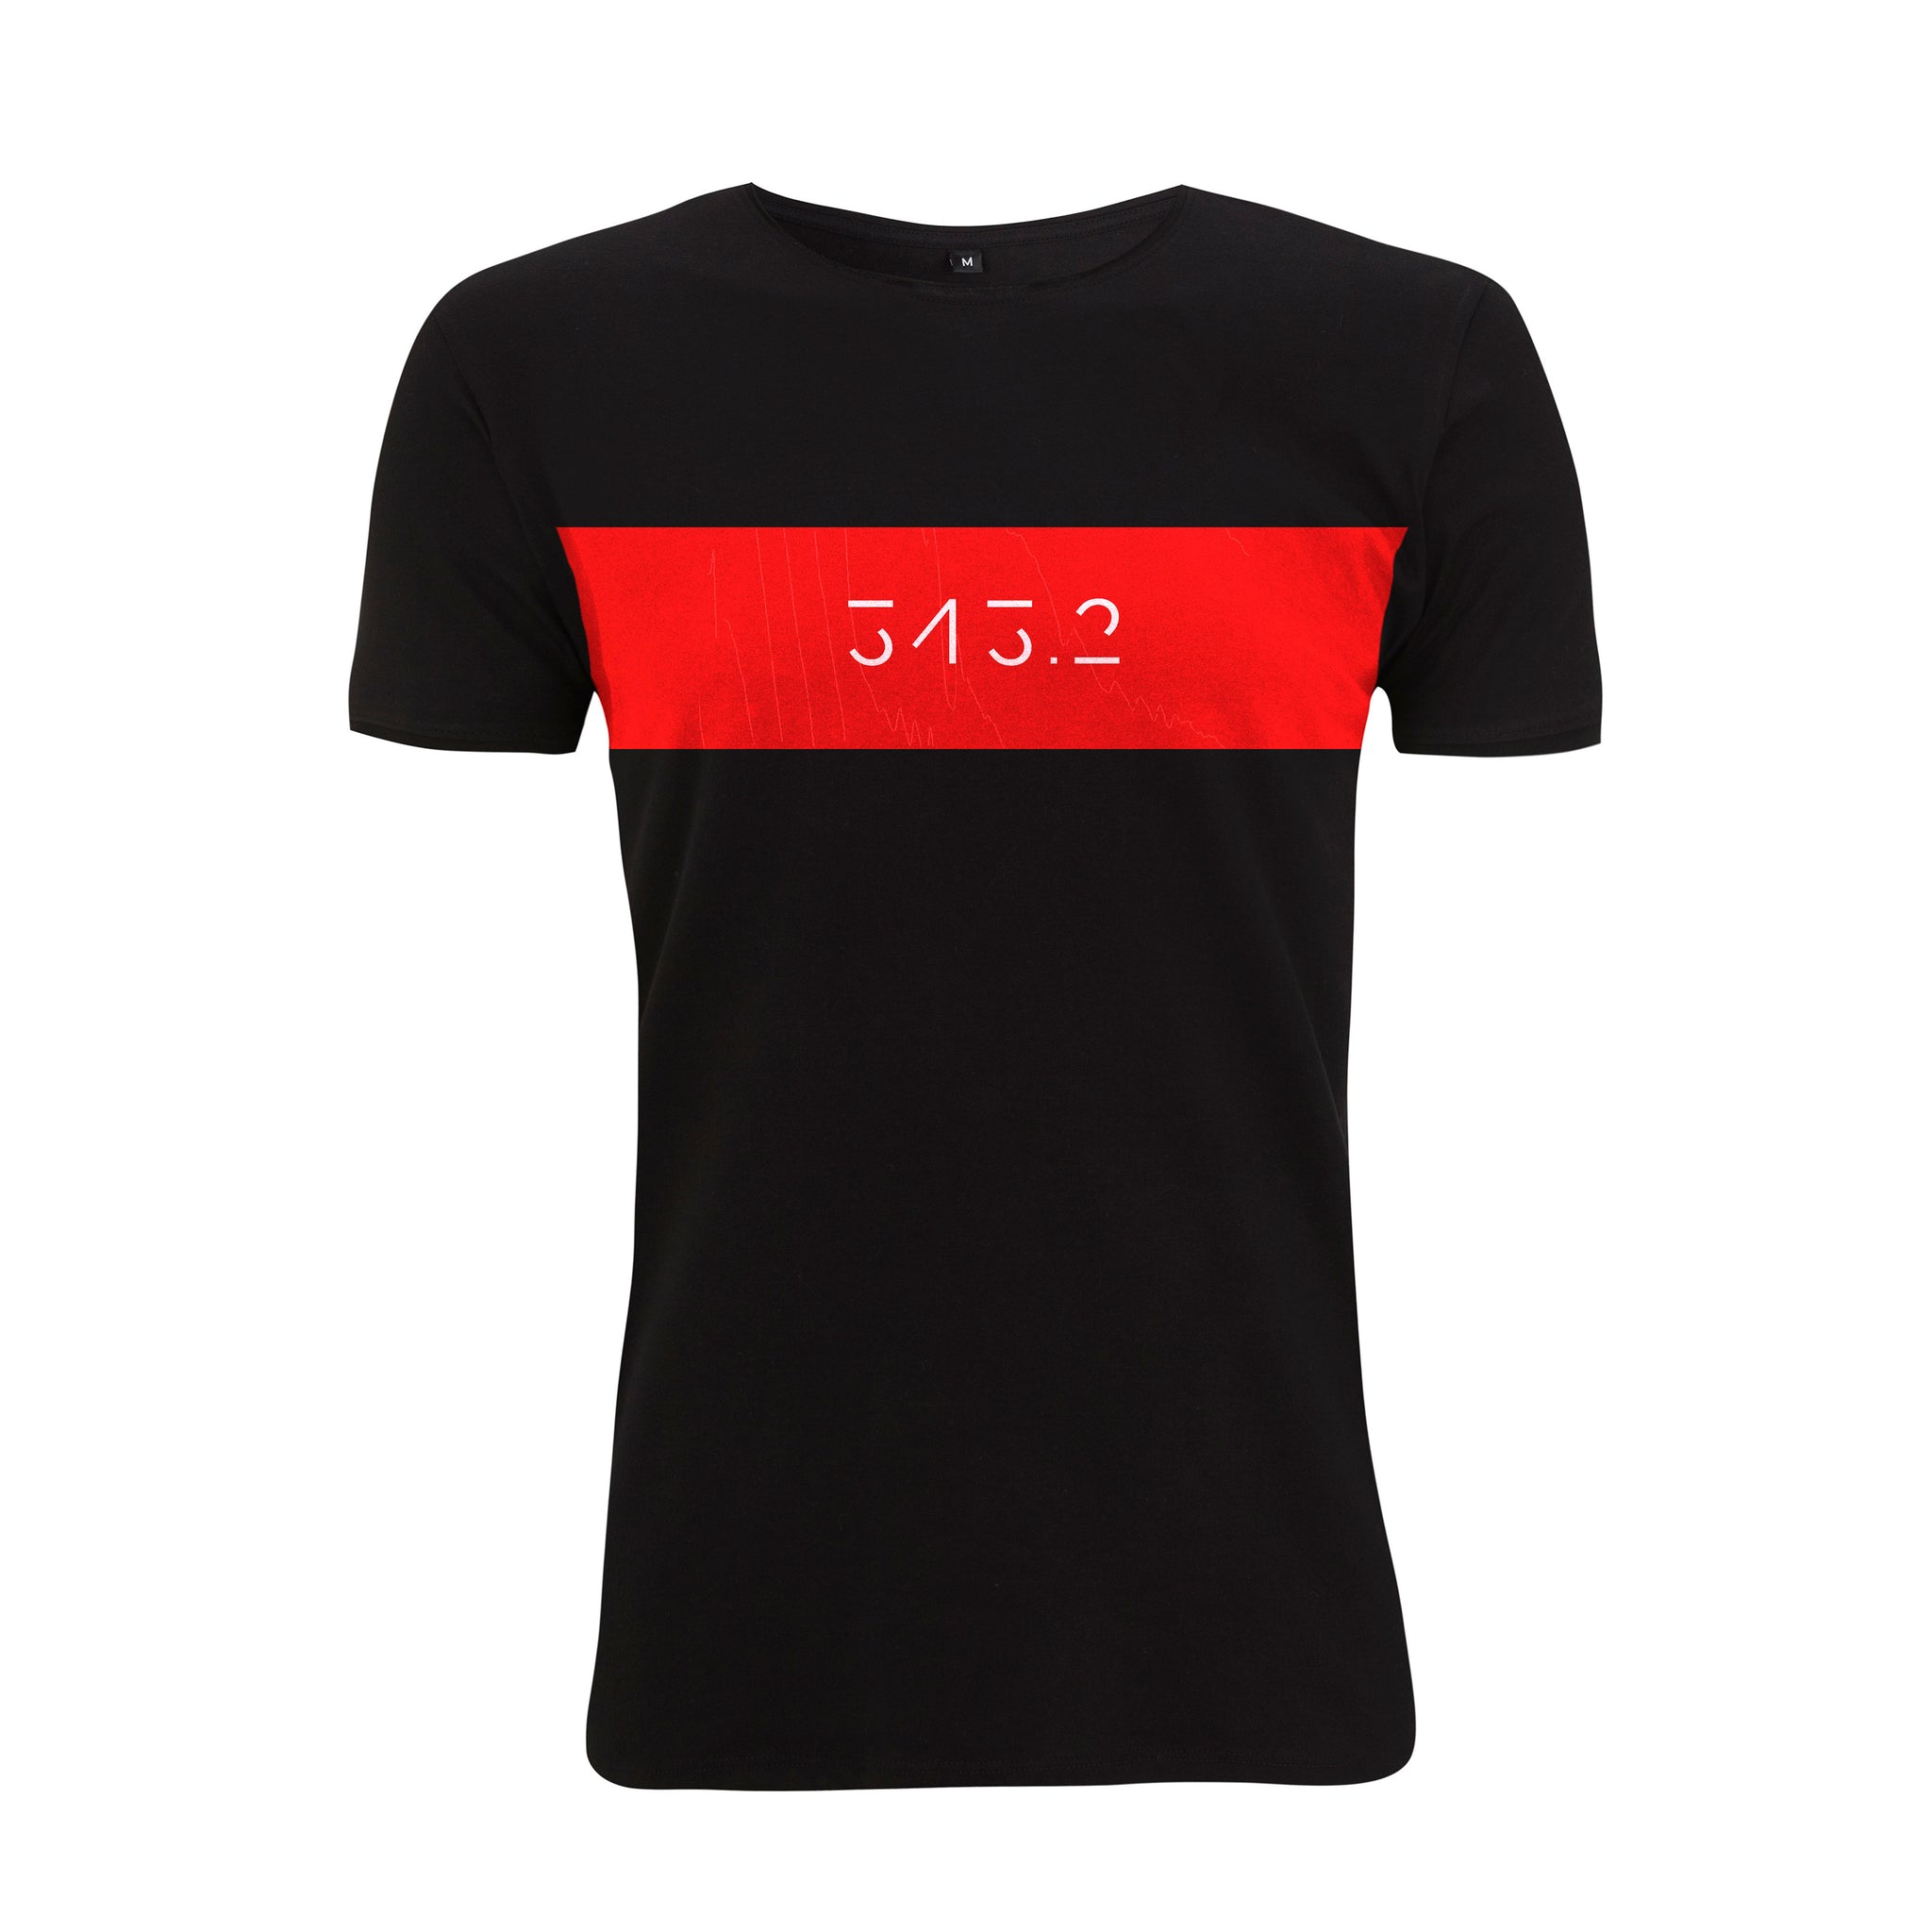 LIMITED EDITION: 343.2 Banner T-Shirt | Audio Architect Apparel